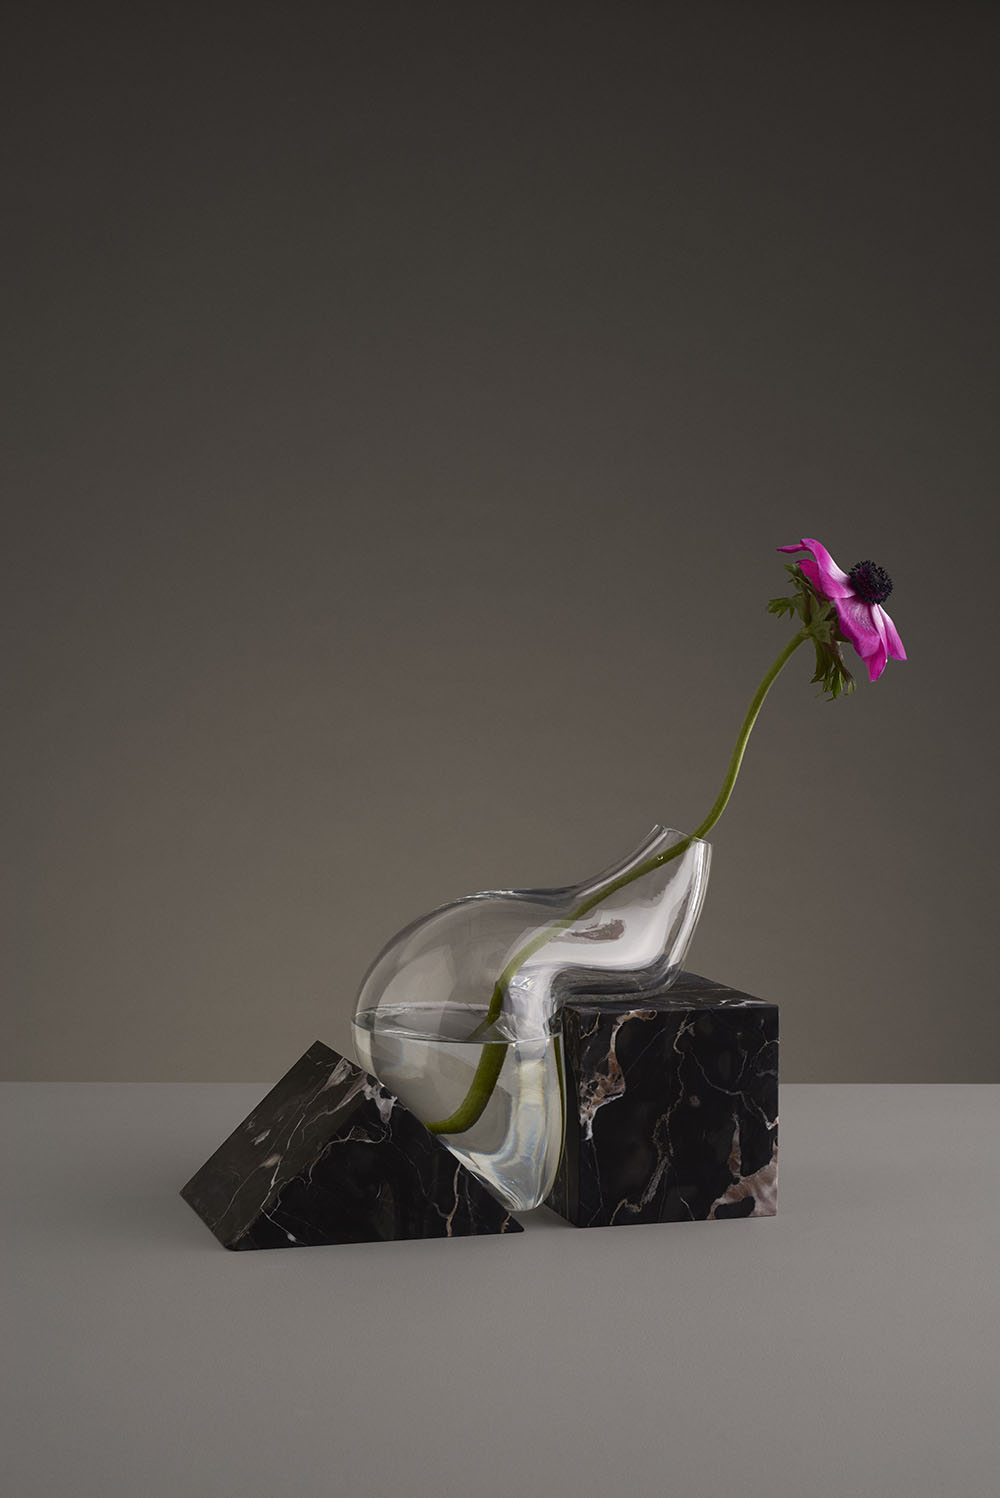 Misshapen Glass Vases by Studio E.O Appear to Melt Atop Angular Stone Platforms